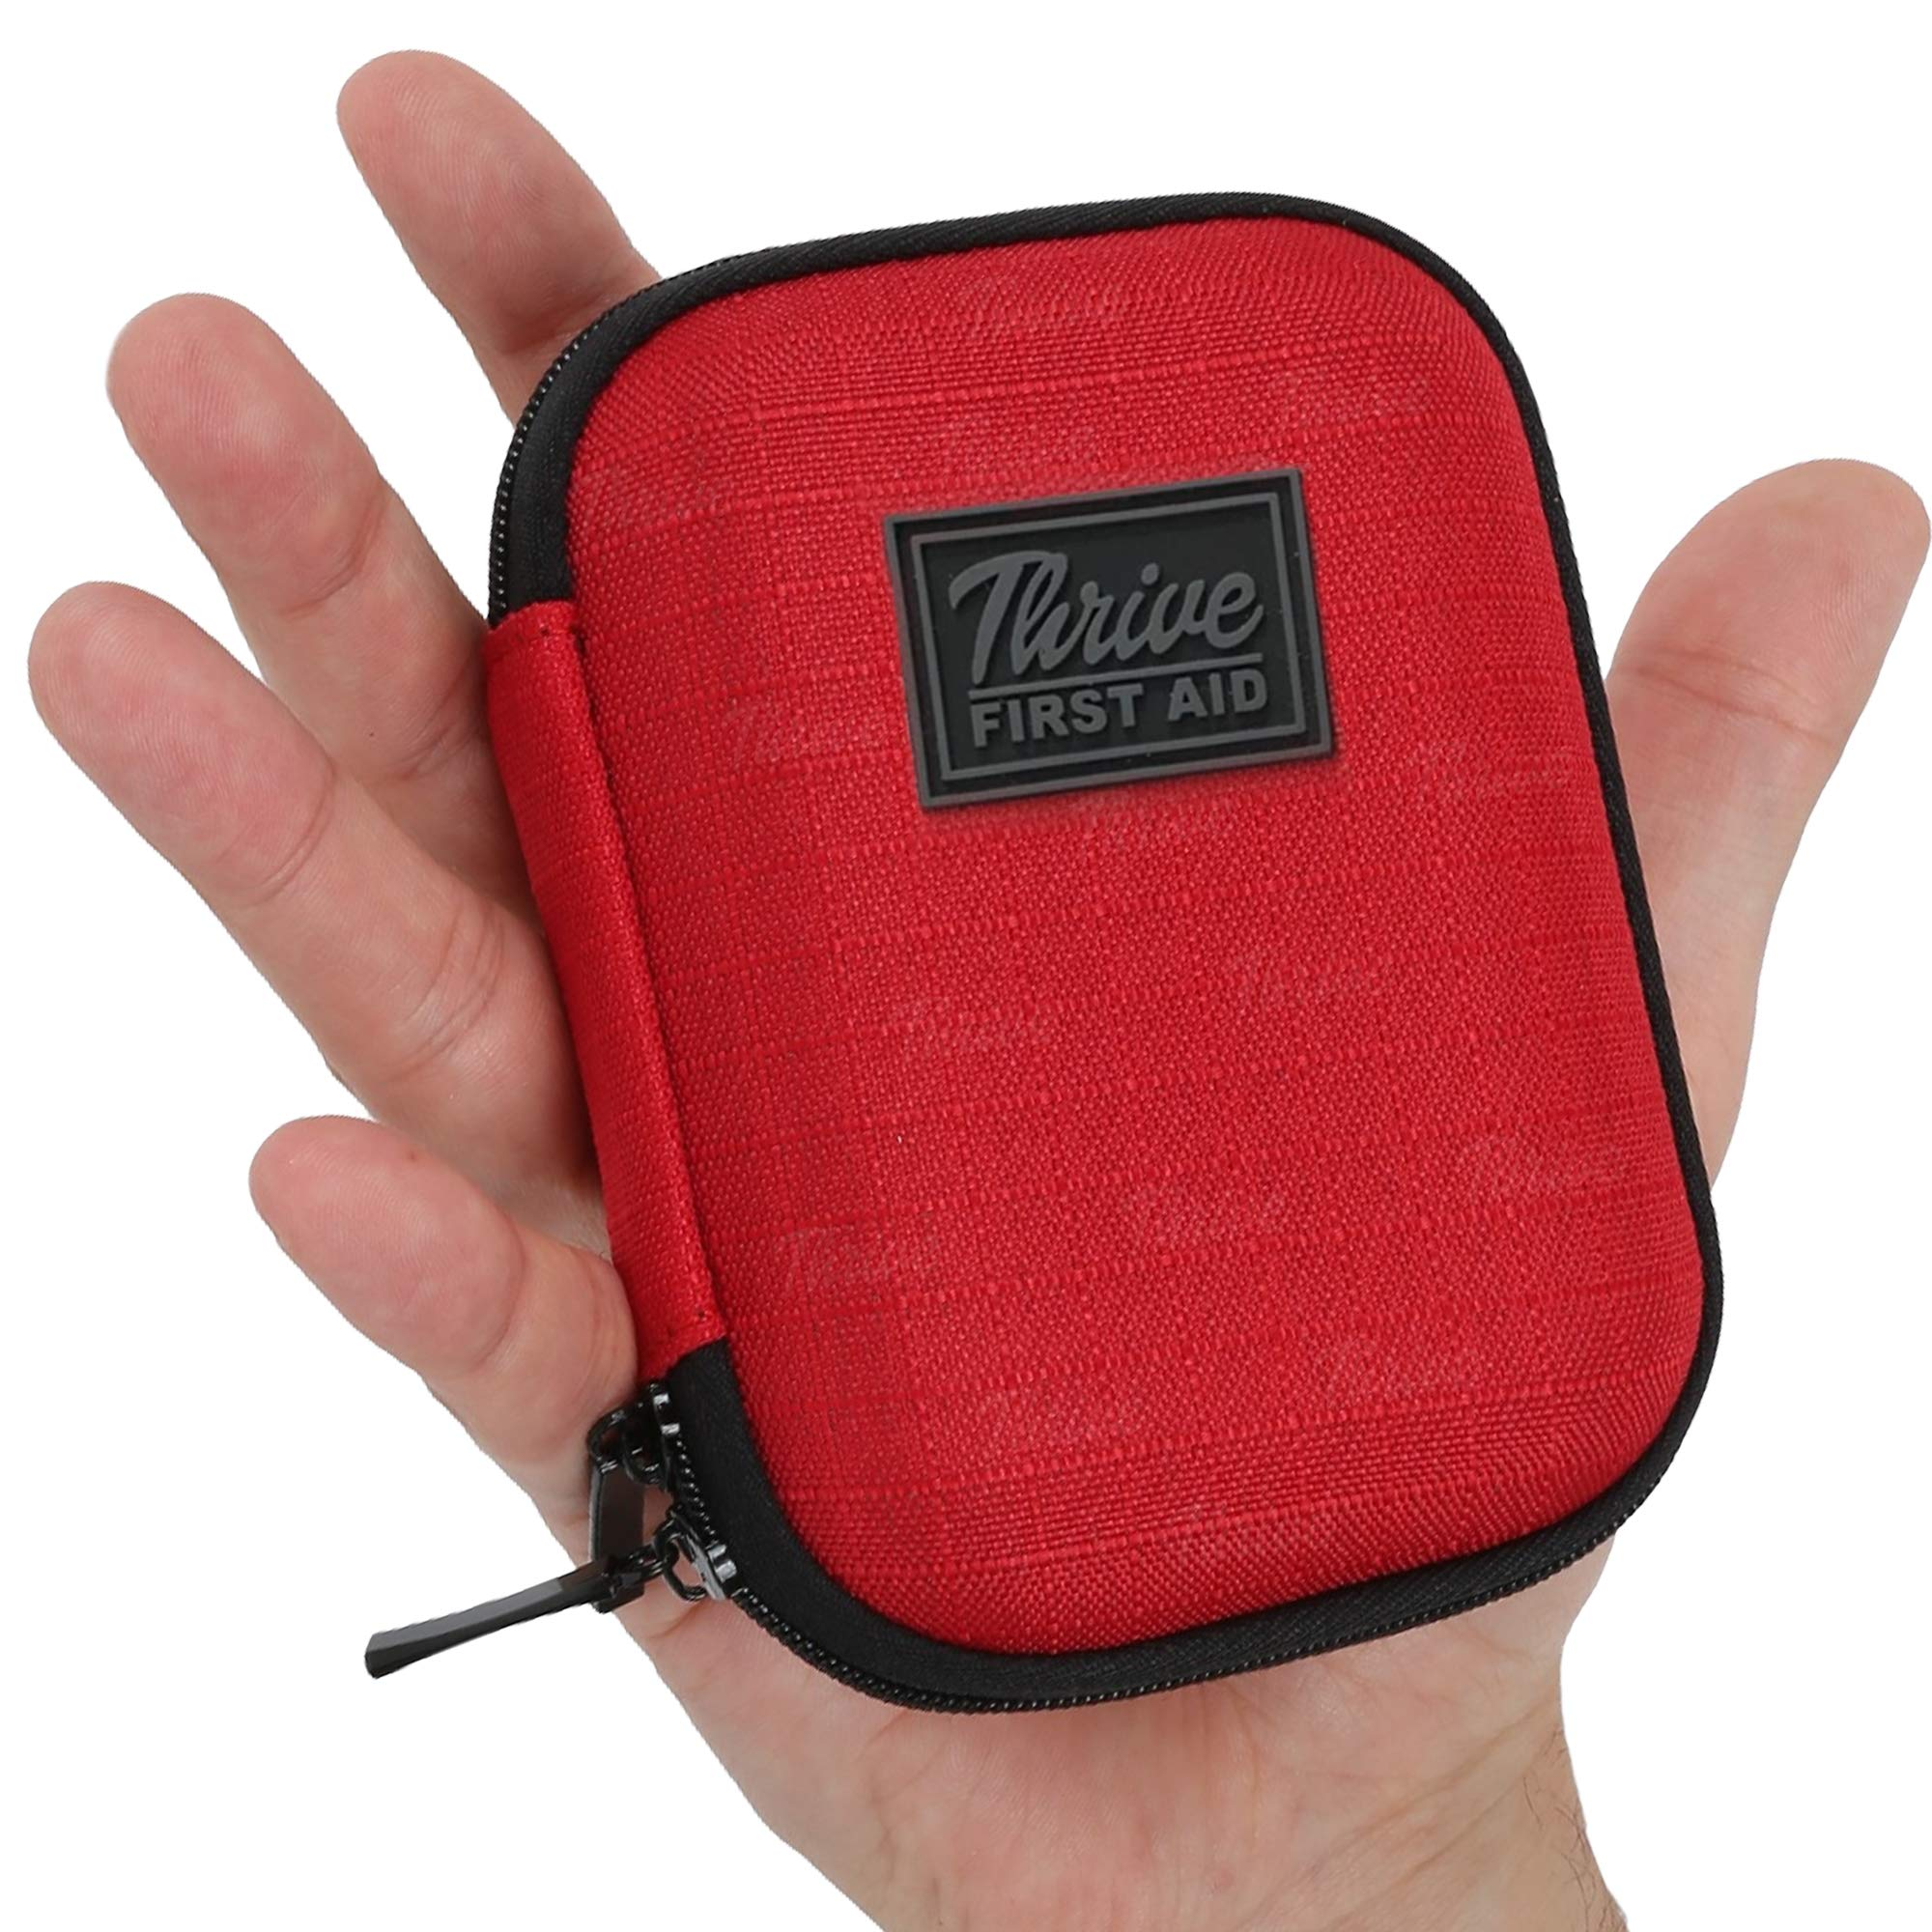 First Aid Kit - 66 Pieces - Small and Light Soft Shell Case - Packed with Hospital Grade Medical Supplies for Emergency and Survival situations. Ideal for Car, Camping, Travel, Sports, Home by Thrive